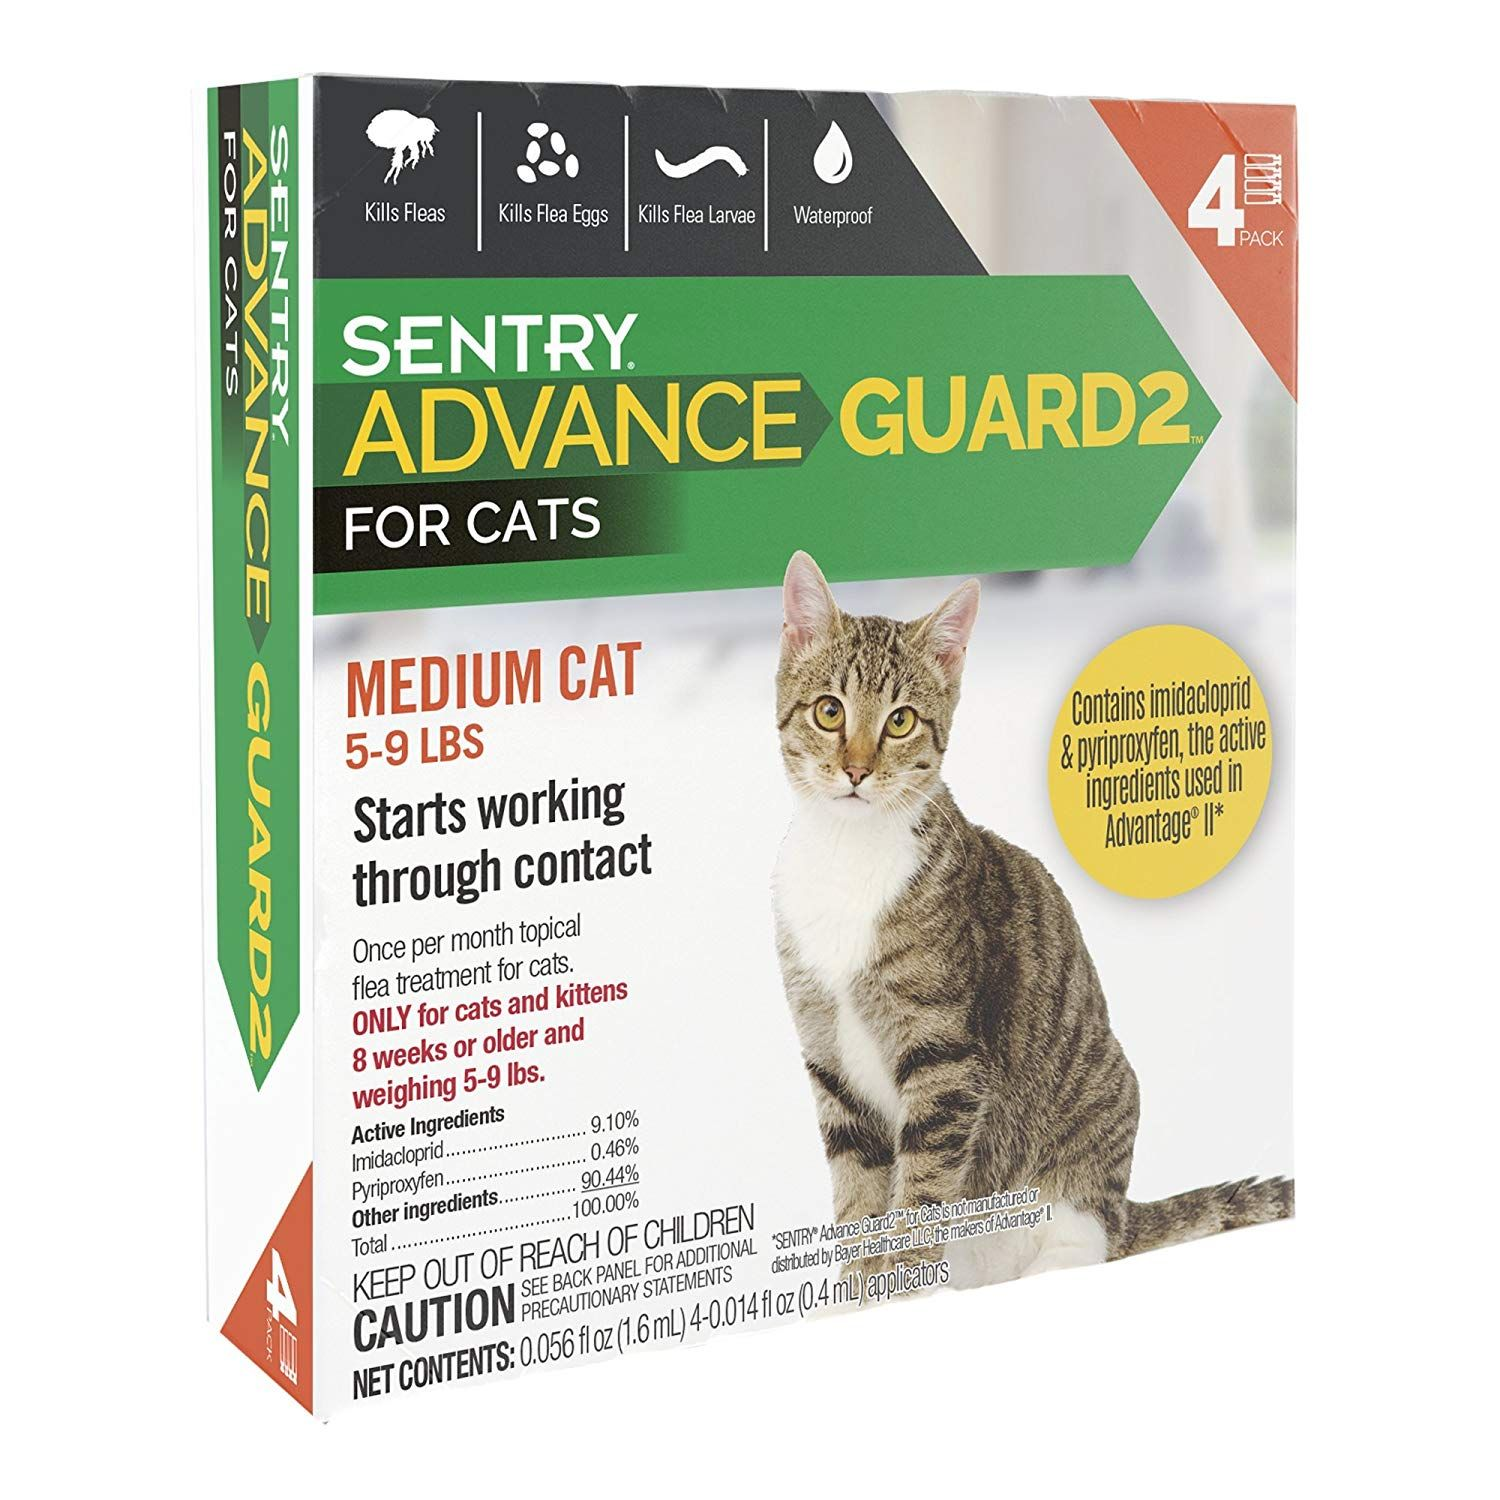 Sentry Advance Guard2 for Cats 5 to 9 lbs, 4 Month Supply